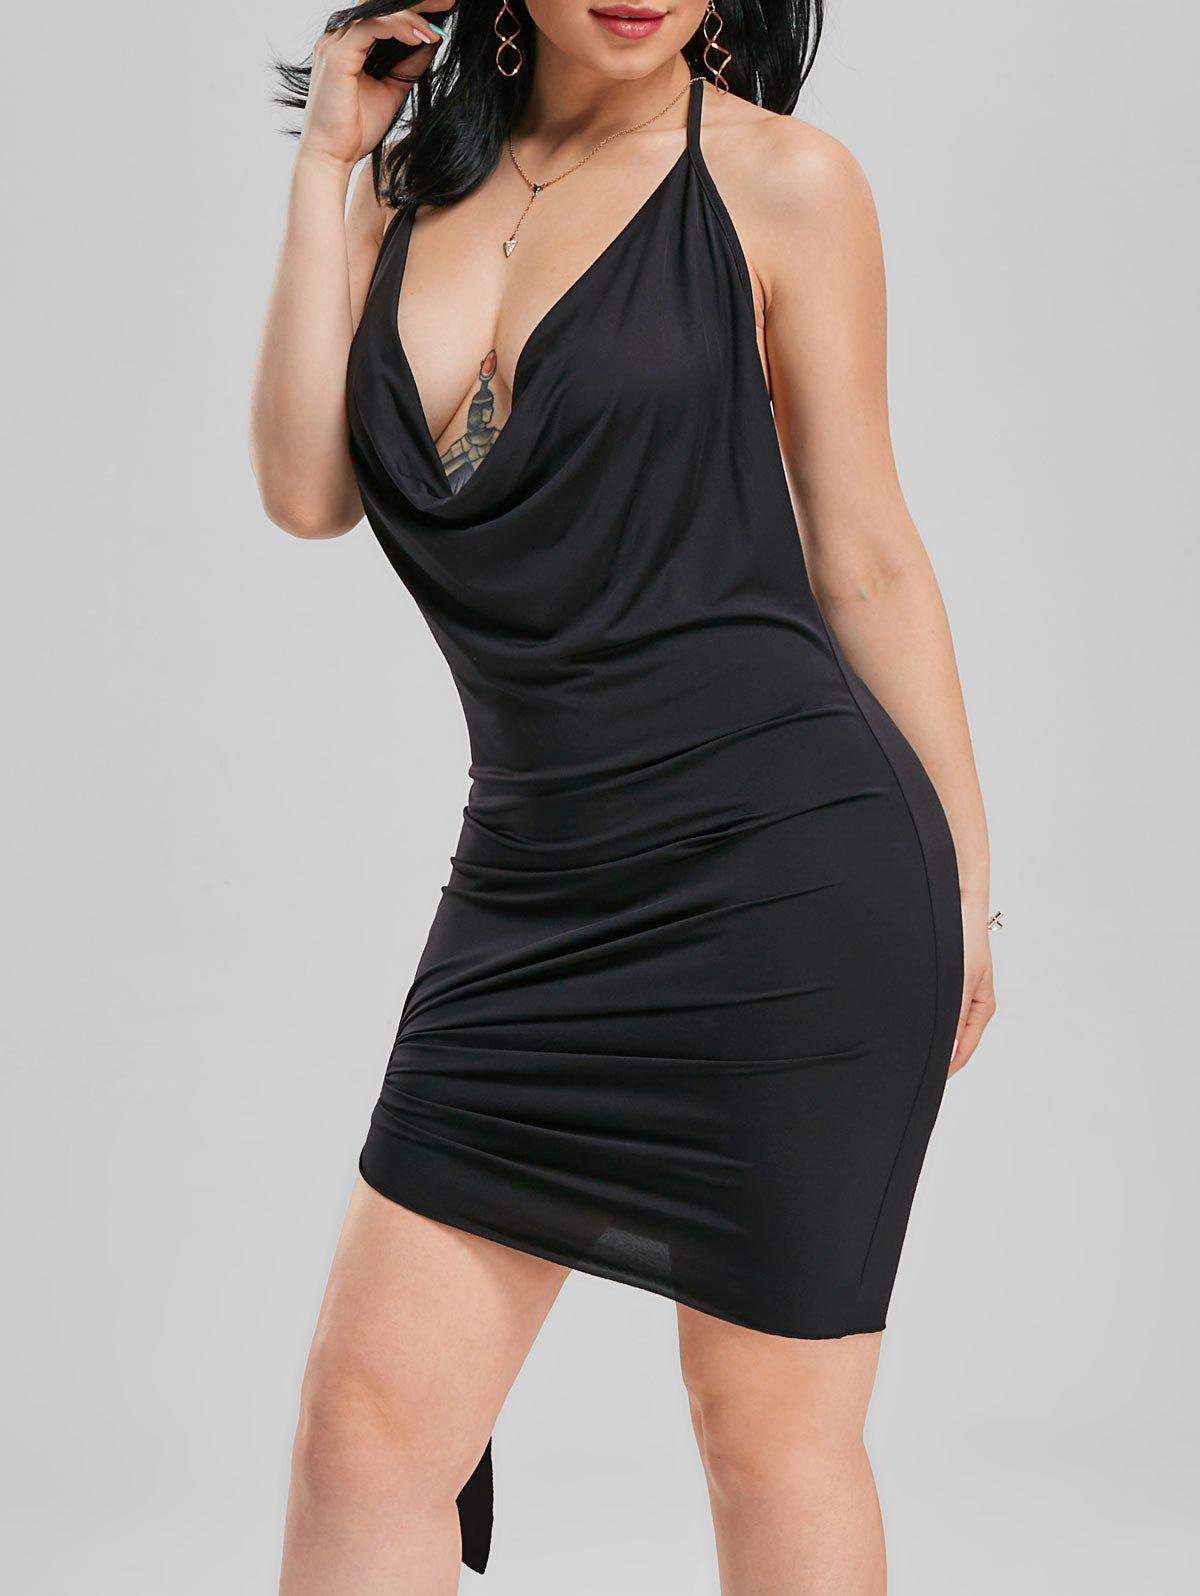 Halter Backless Mini Club Dress - BLACK S